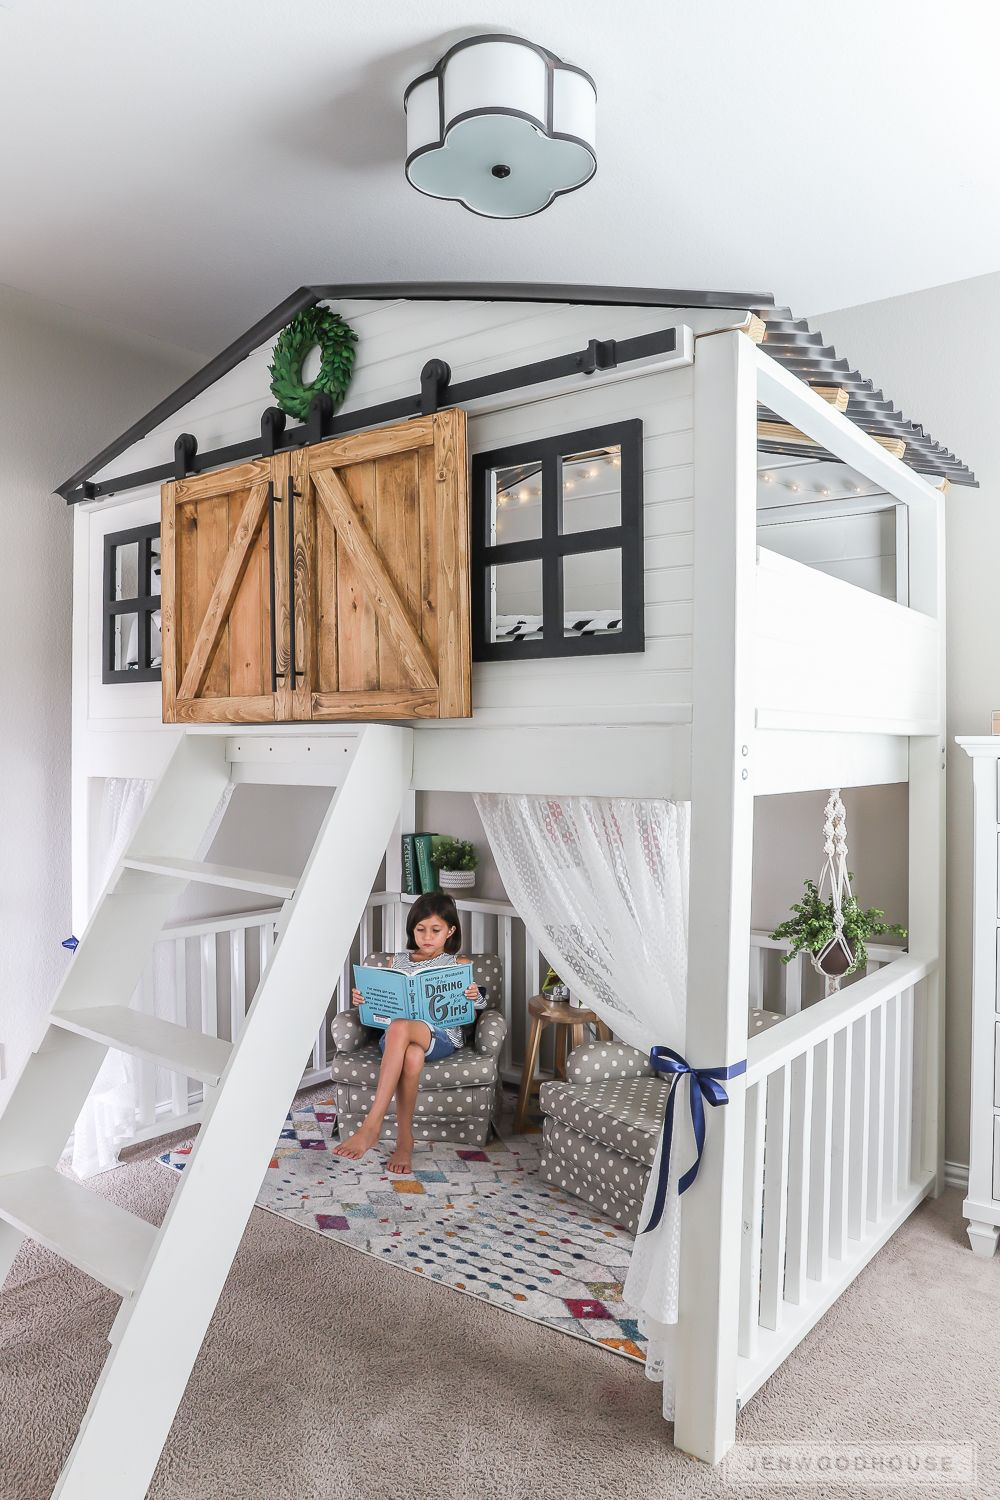 How To Build A DIY Sliding Barn Door Loft Bed Full Size images